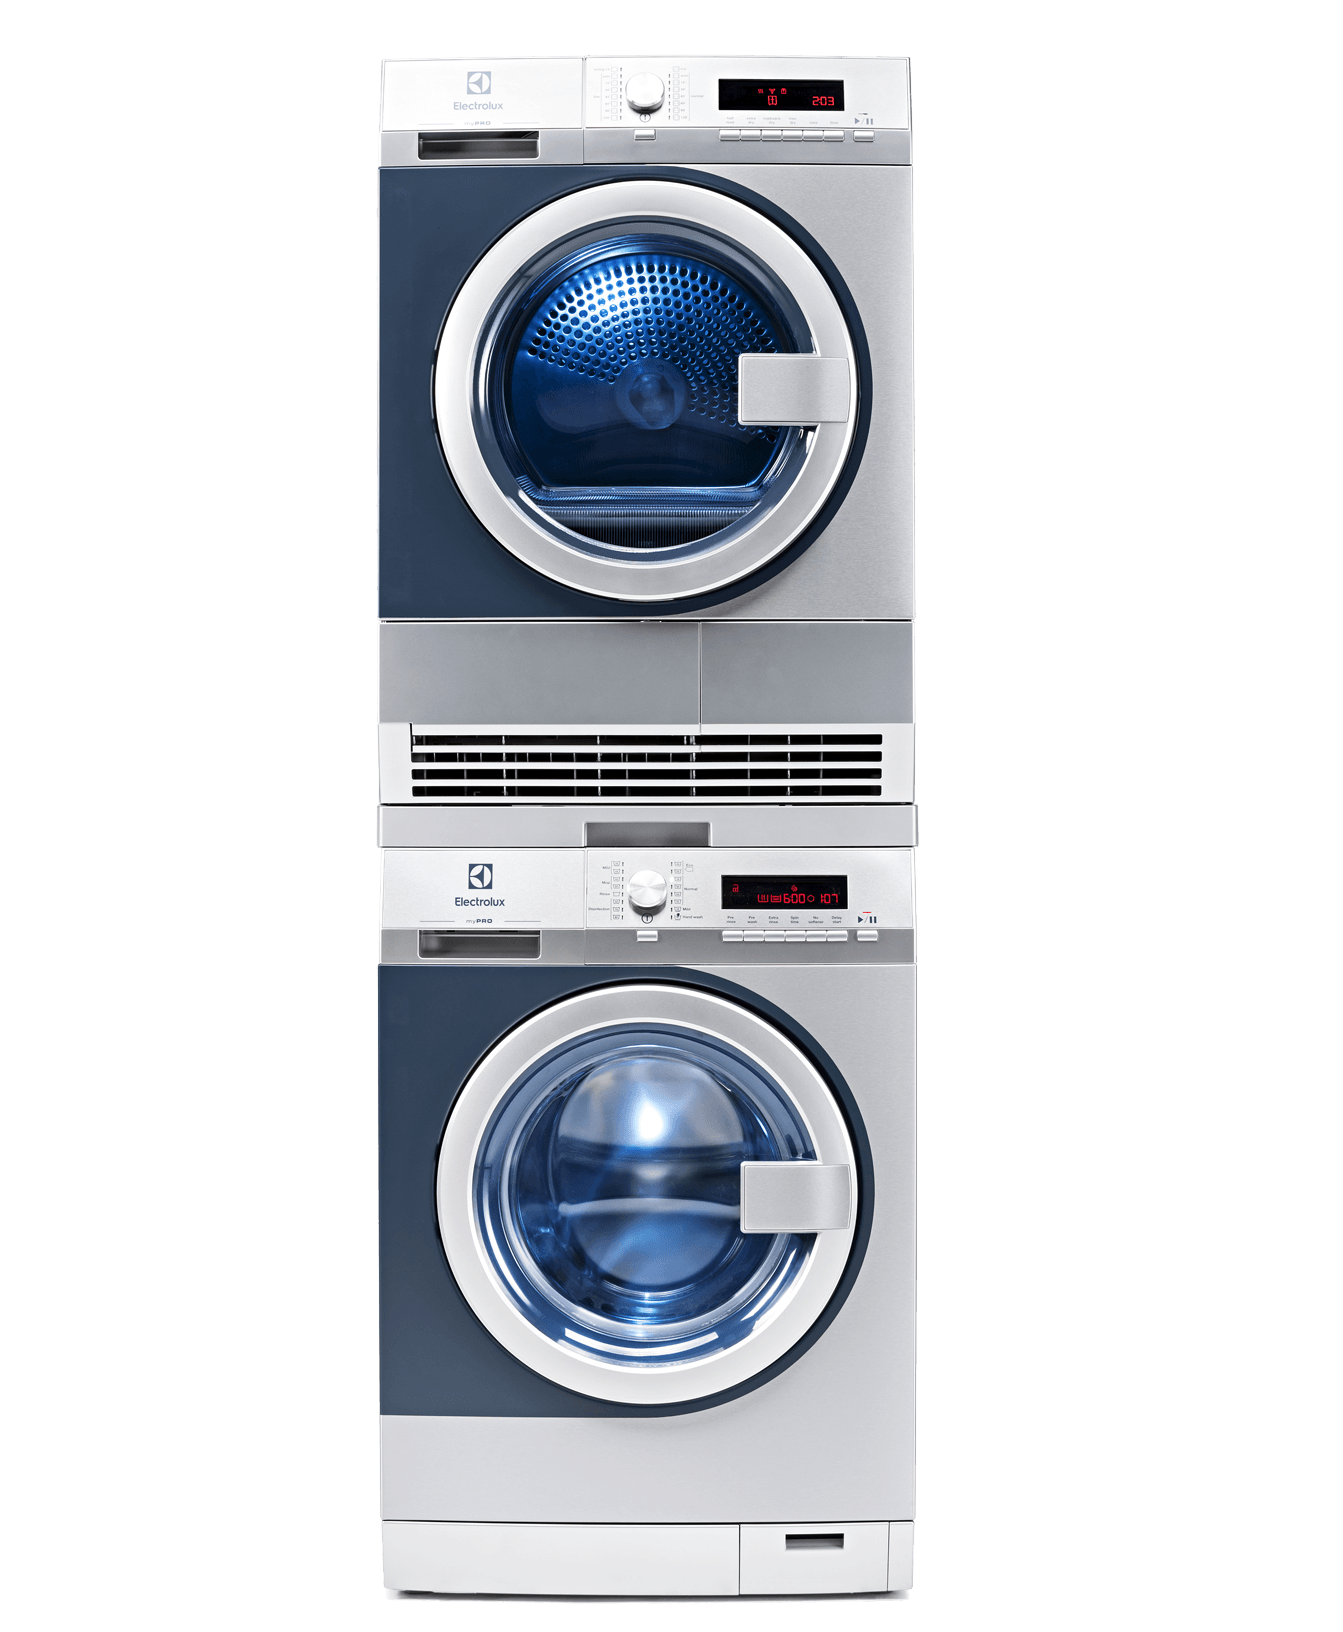 Electrolux Condenser Dryer Electrolux Mypro Washer Dryer 2x8kg The Opl Group